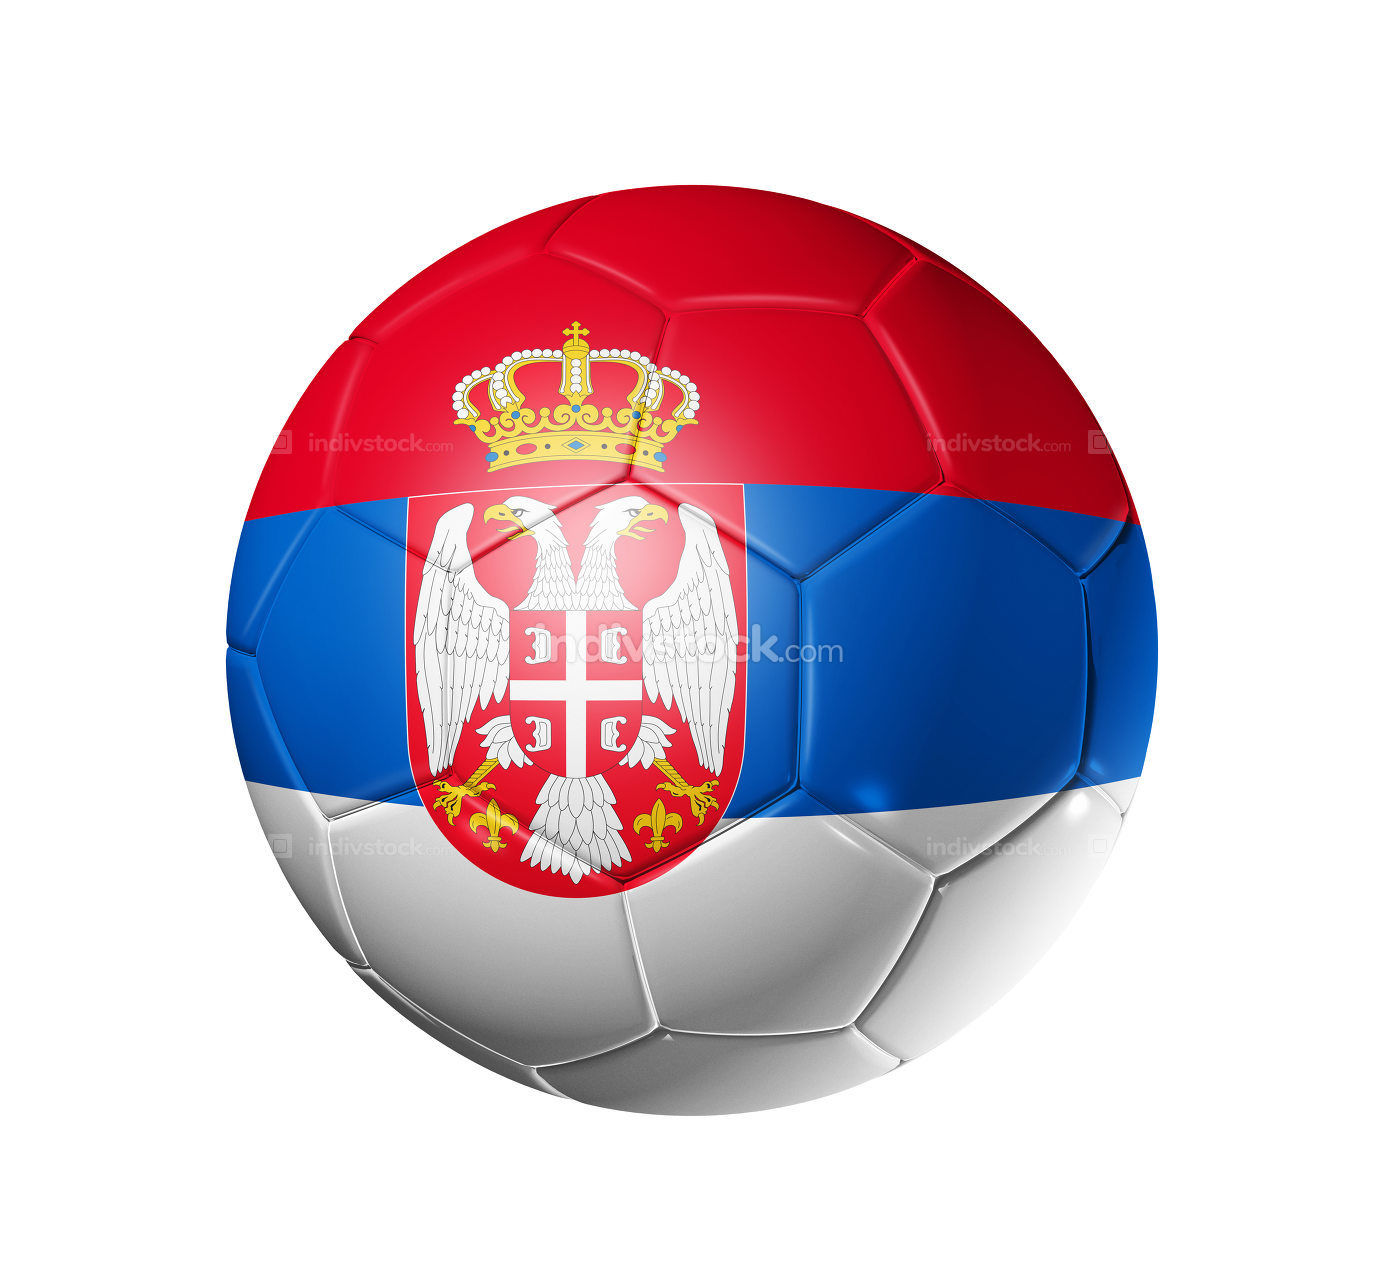 Soccer football ball with Serbia flag